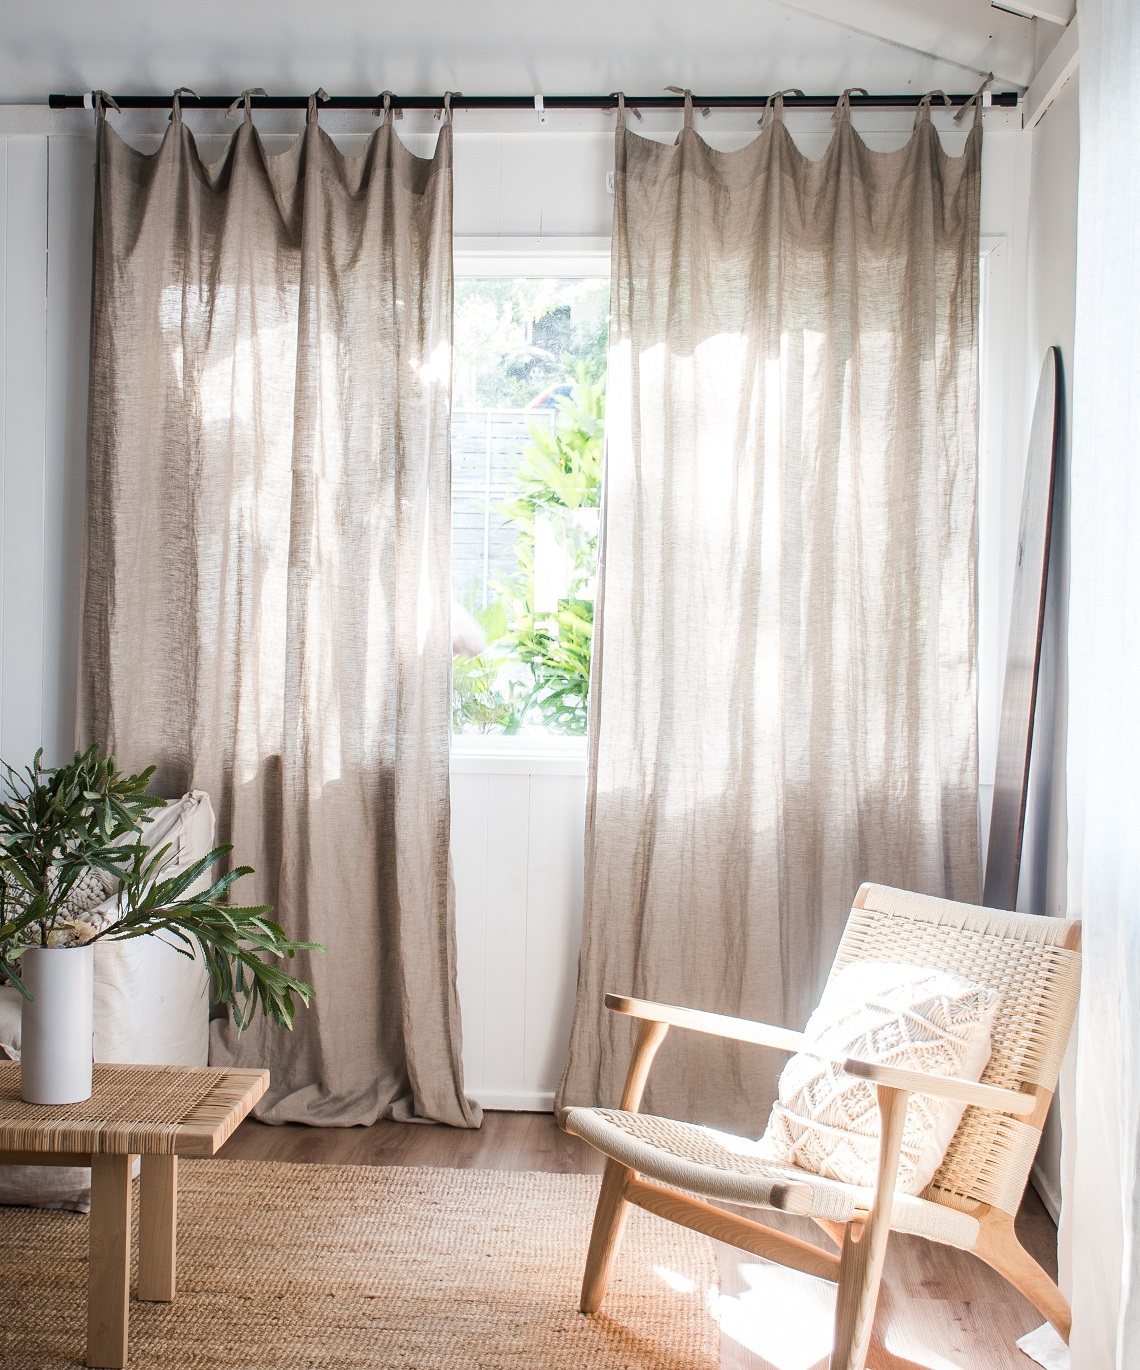 Luxe French Linen Curtain Set In Natural Within Signature French Linen Curtain Panels (View 24 of 30)